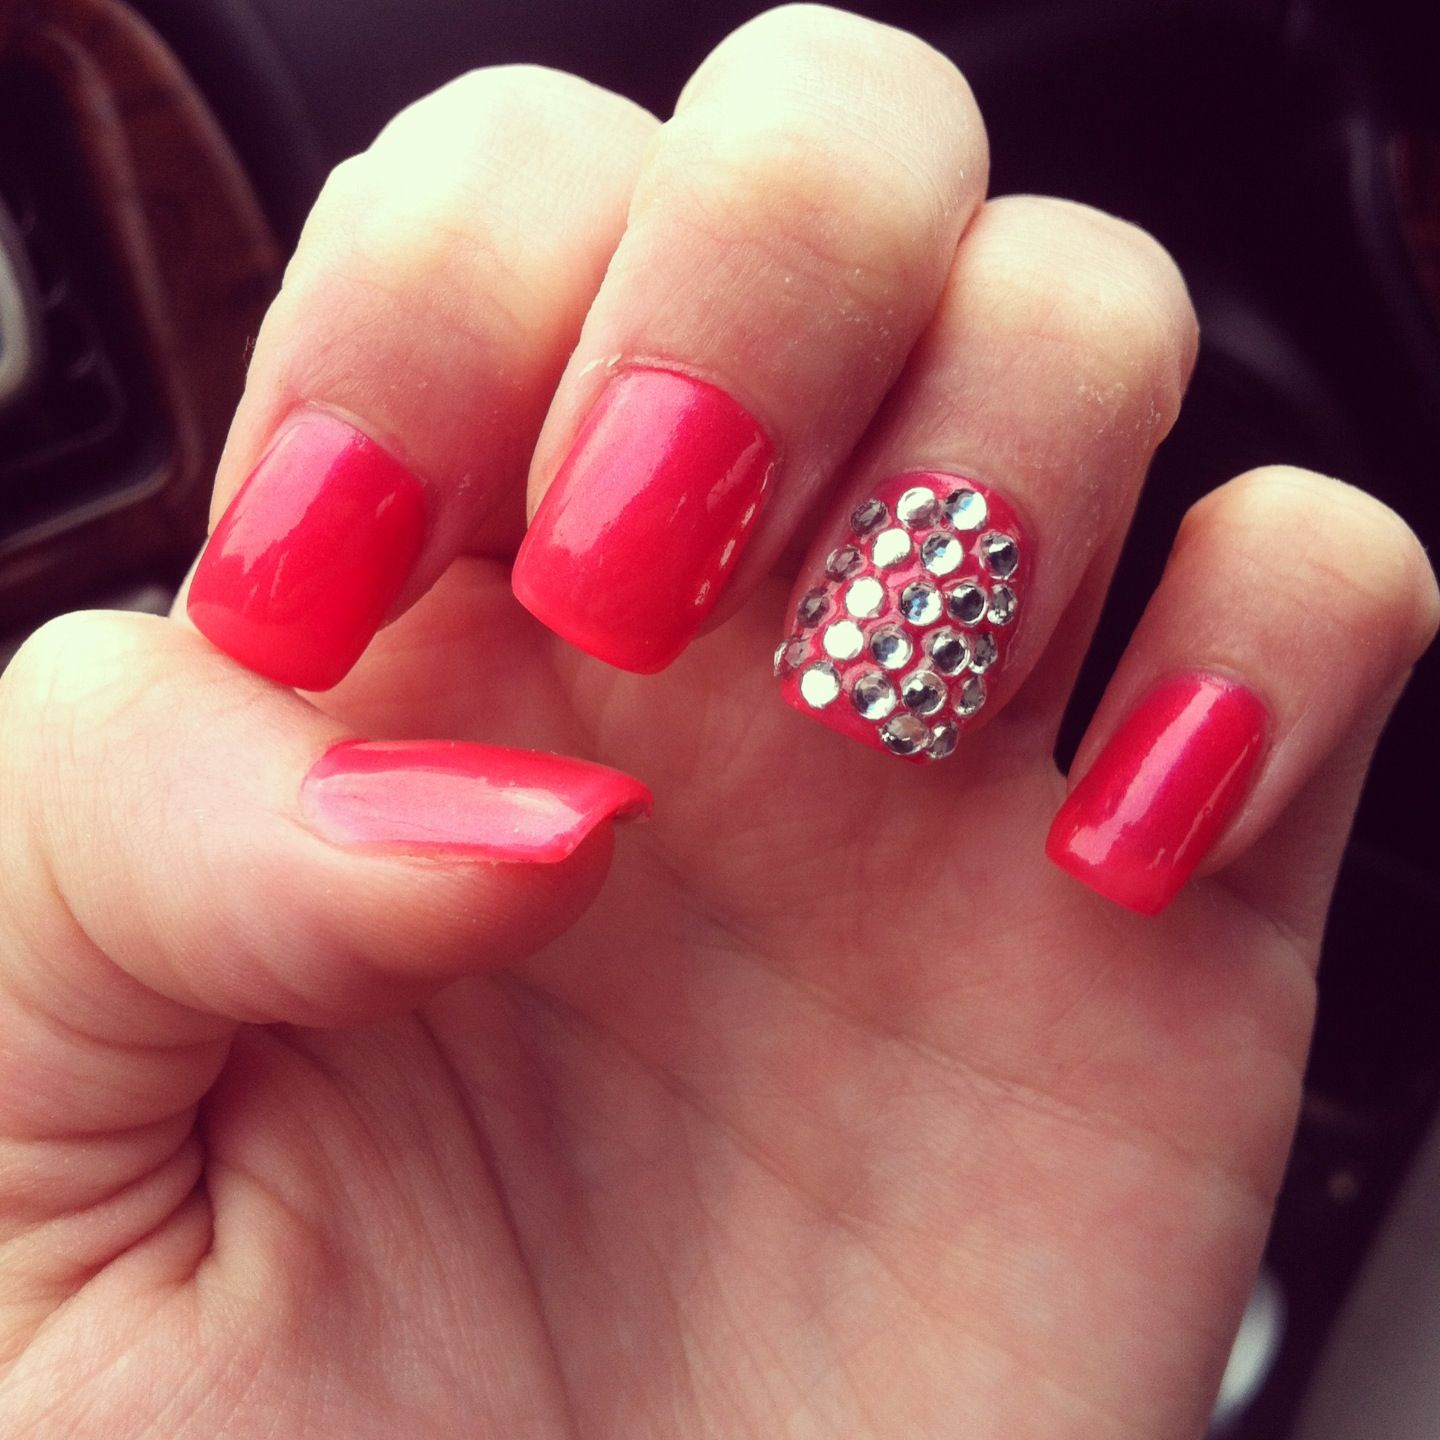 Pink rhinestone nails fashion pinterest rhinestone Fashion style and nails facebook